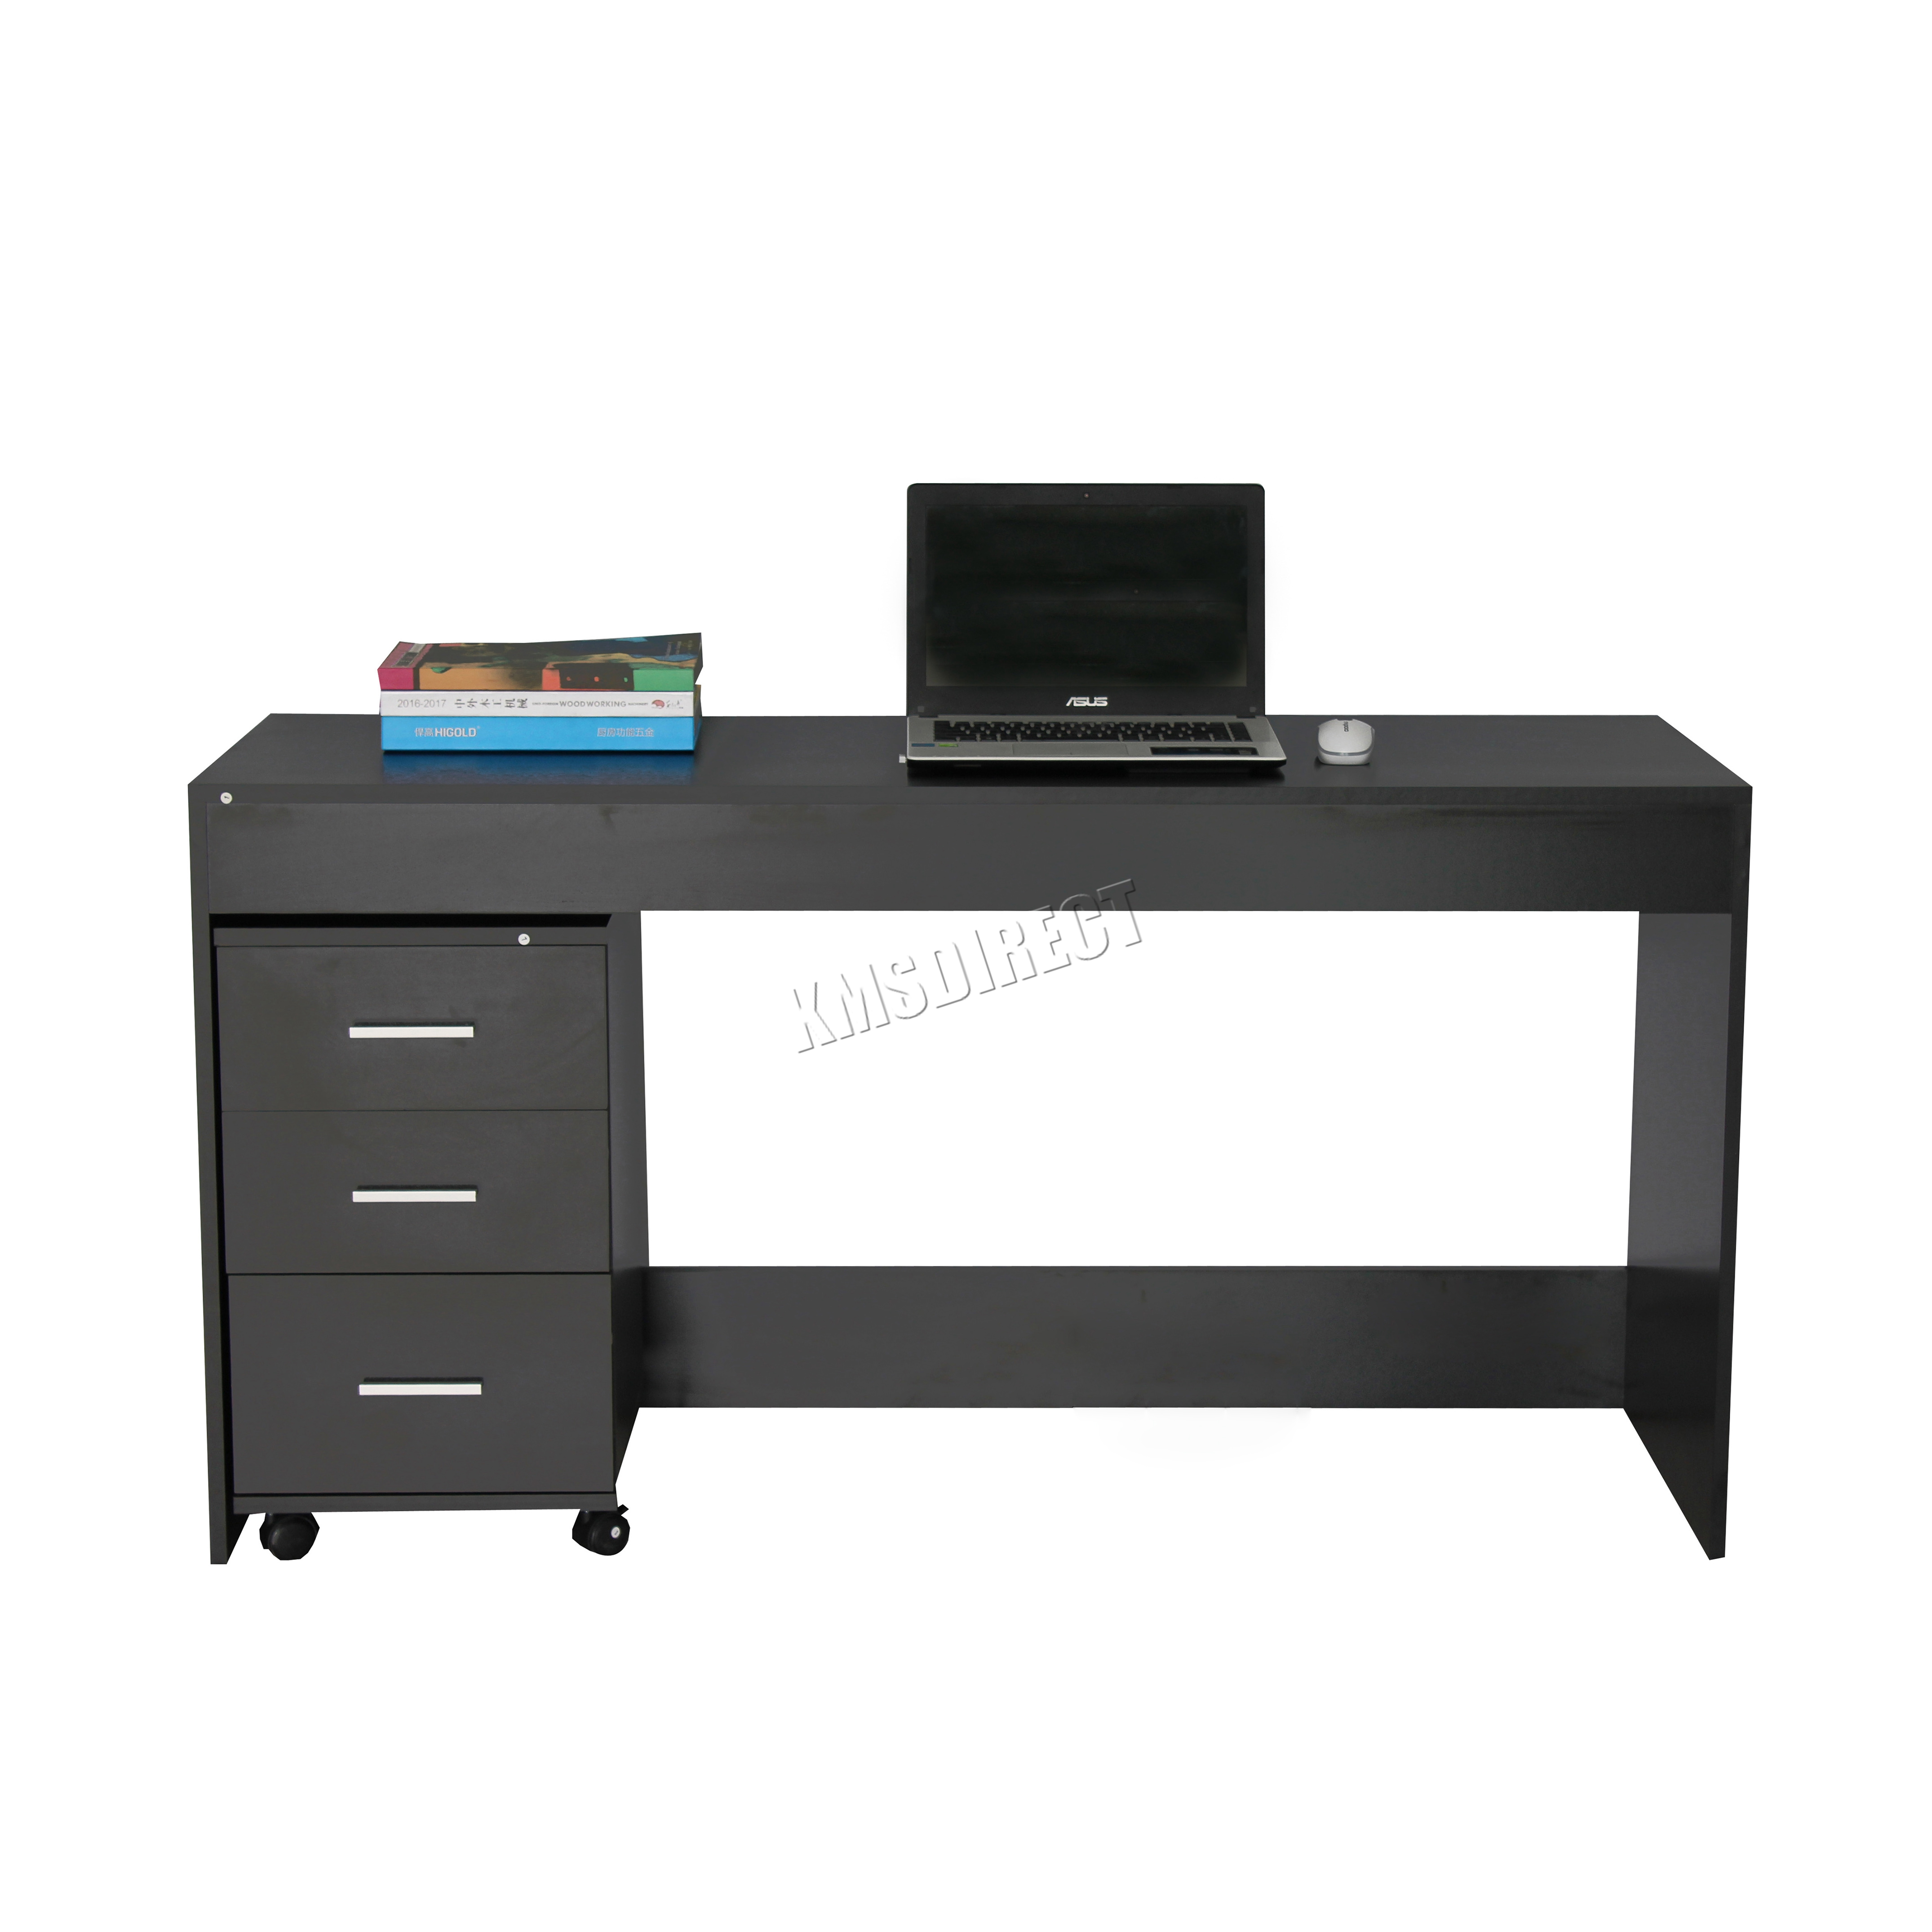 foxhunter computer desk pc table with  drawers home office  - sentinel foxhunter computer desk pc table with  drawers home officefurniture study cd